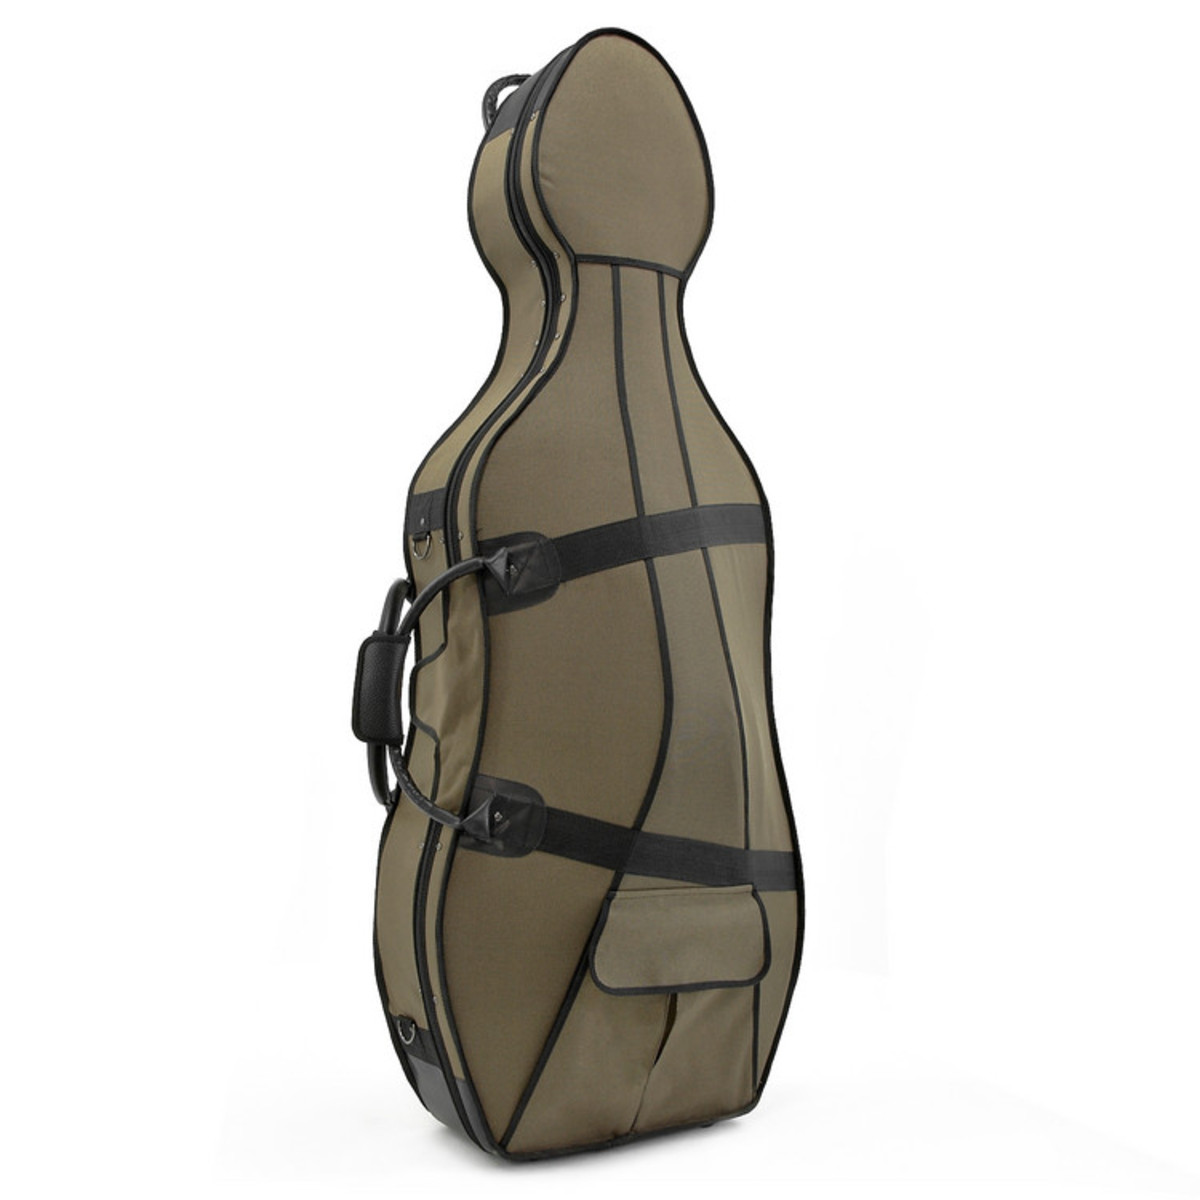 Image of Archer Lightweight Cello Case 3/4 size By Gear4music